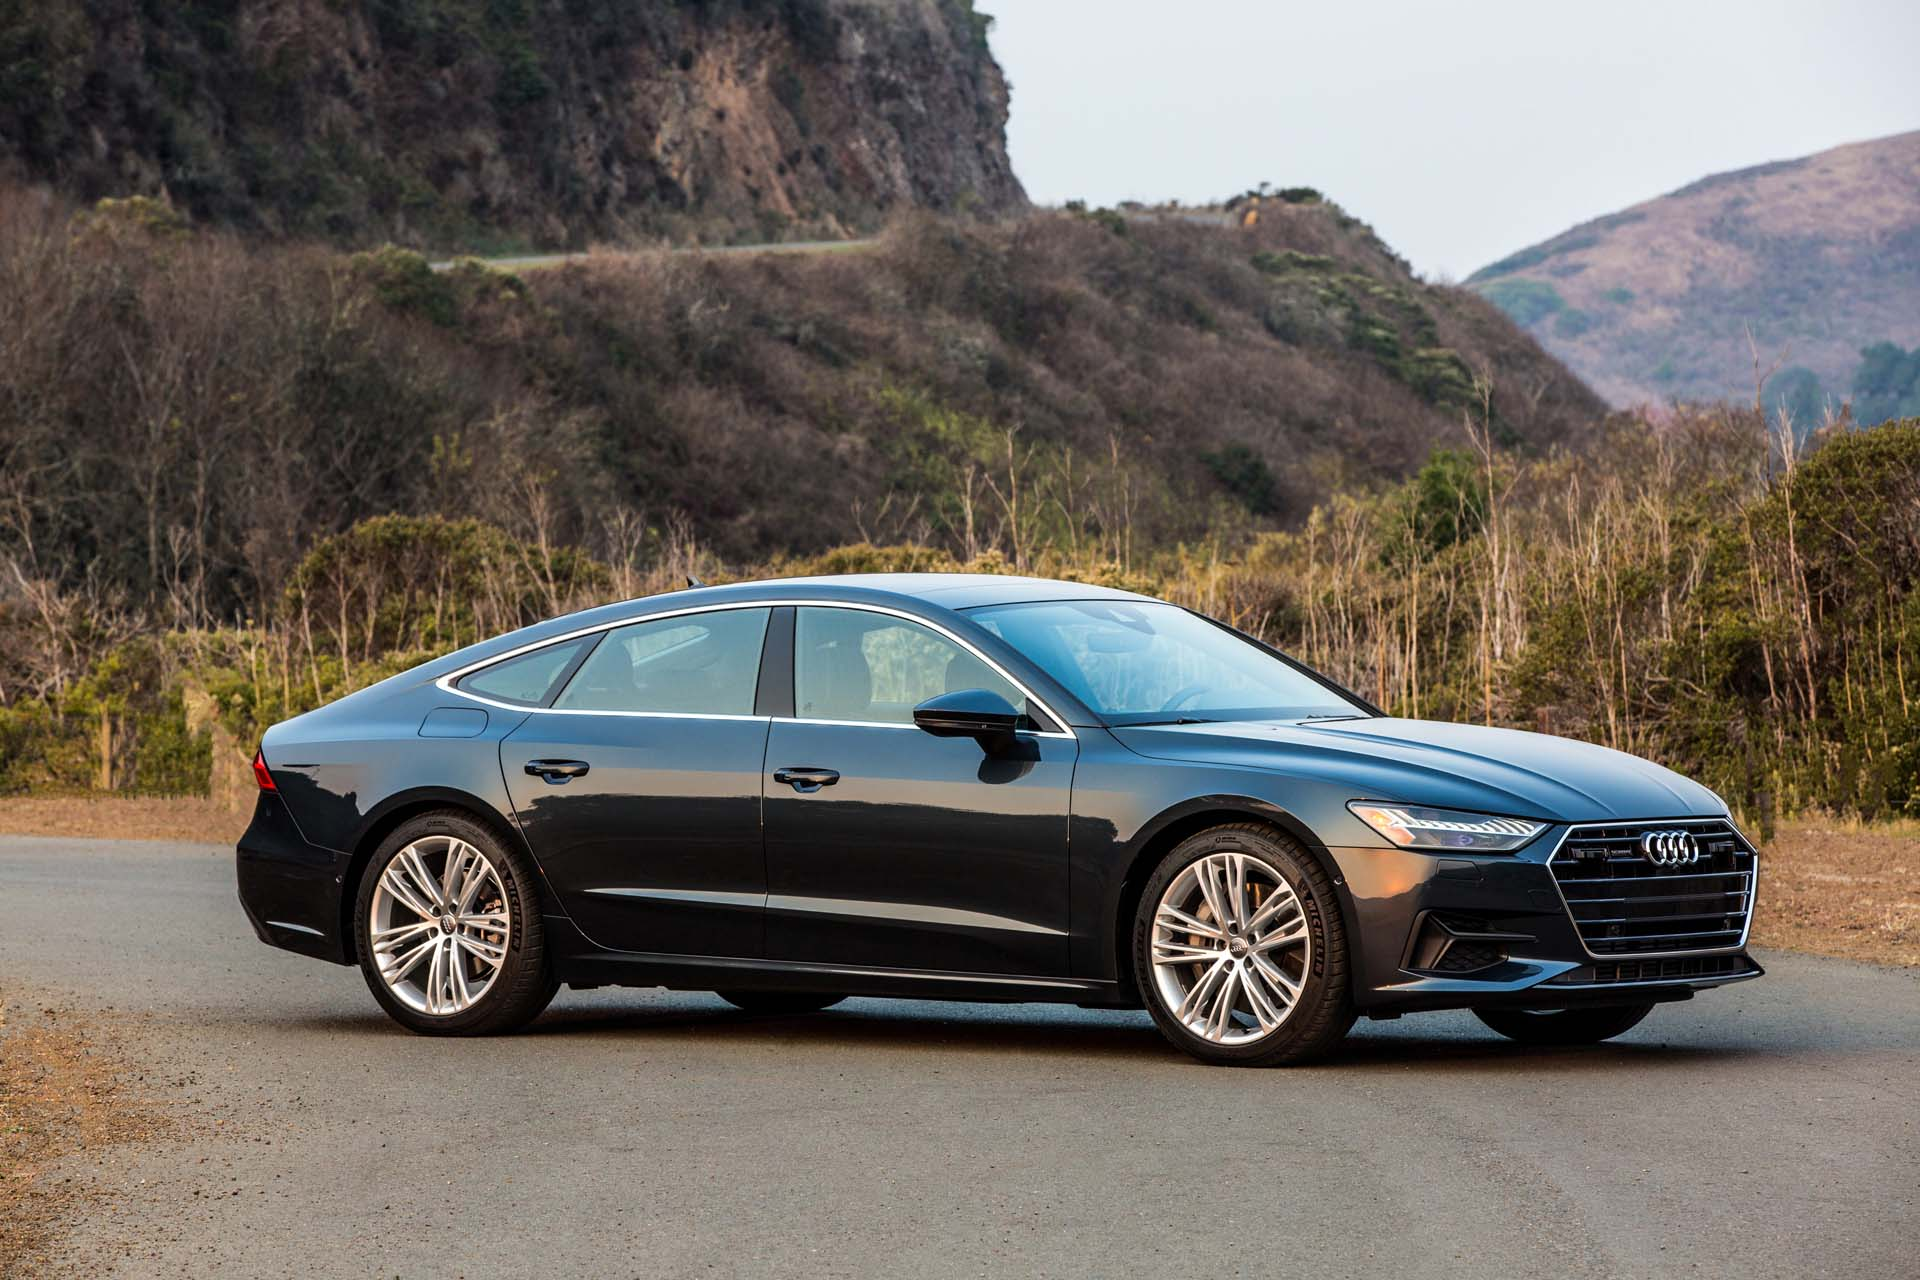 2019 Audi A7 Review, Ratings, Specs, Prices, And Photos